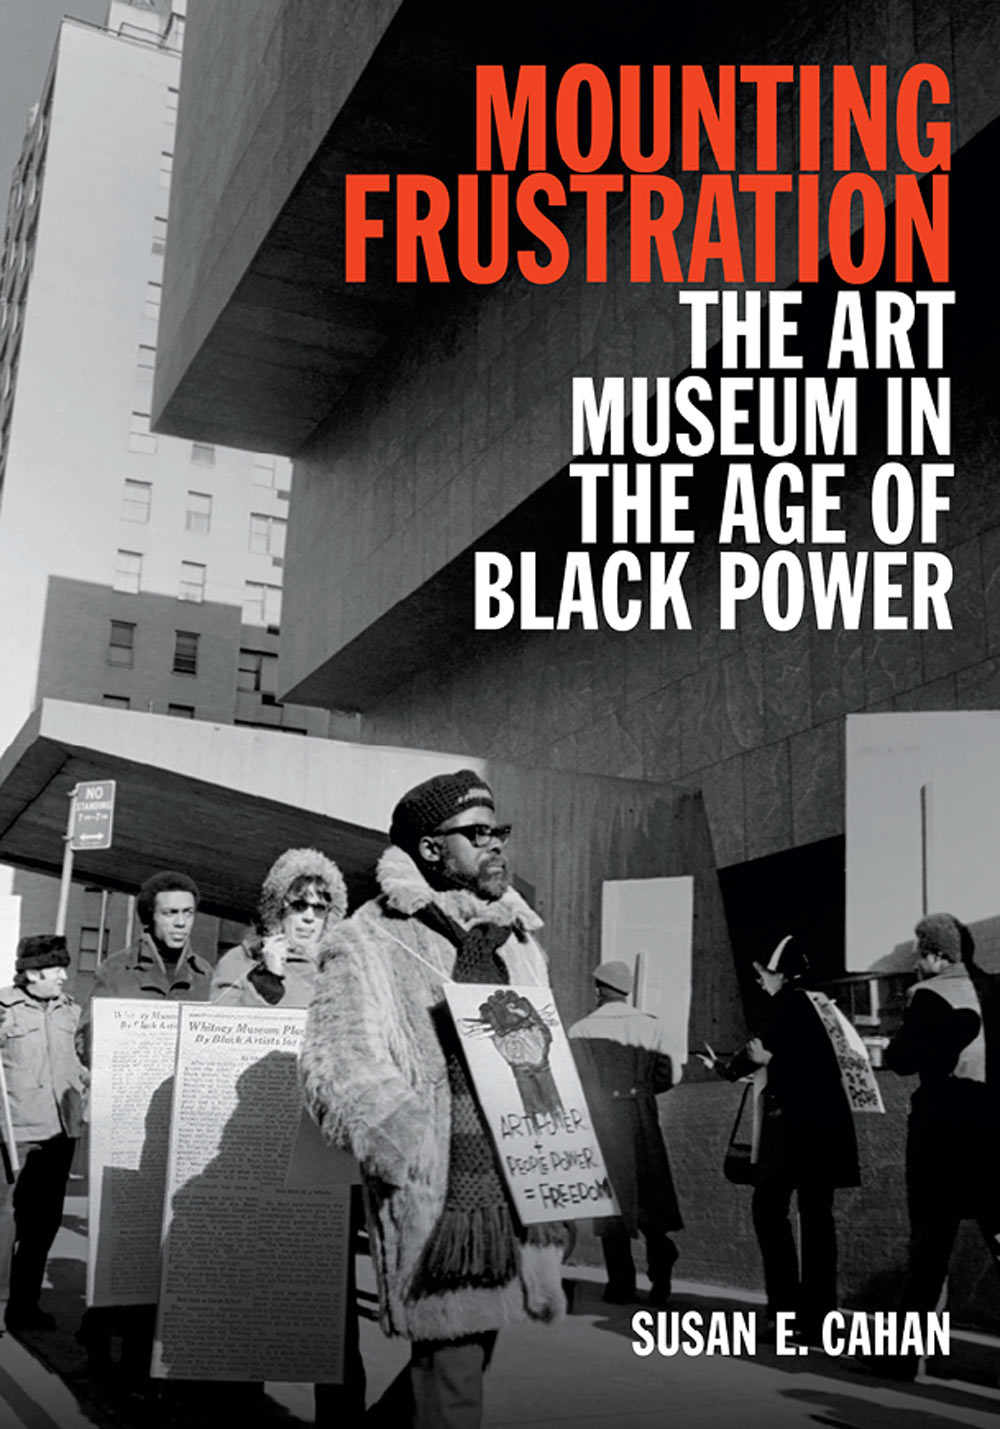 School of Thought – Mounting Frustration: The Art Museum in the Age of Black Power